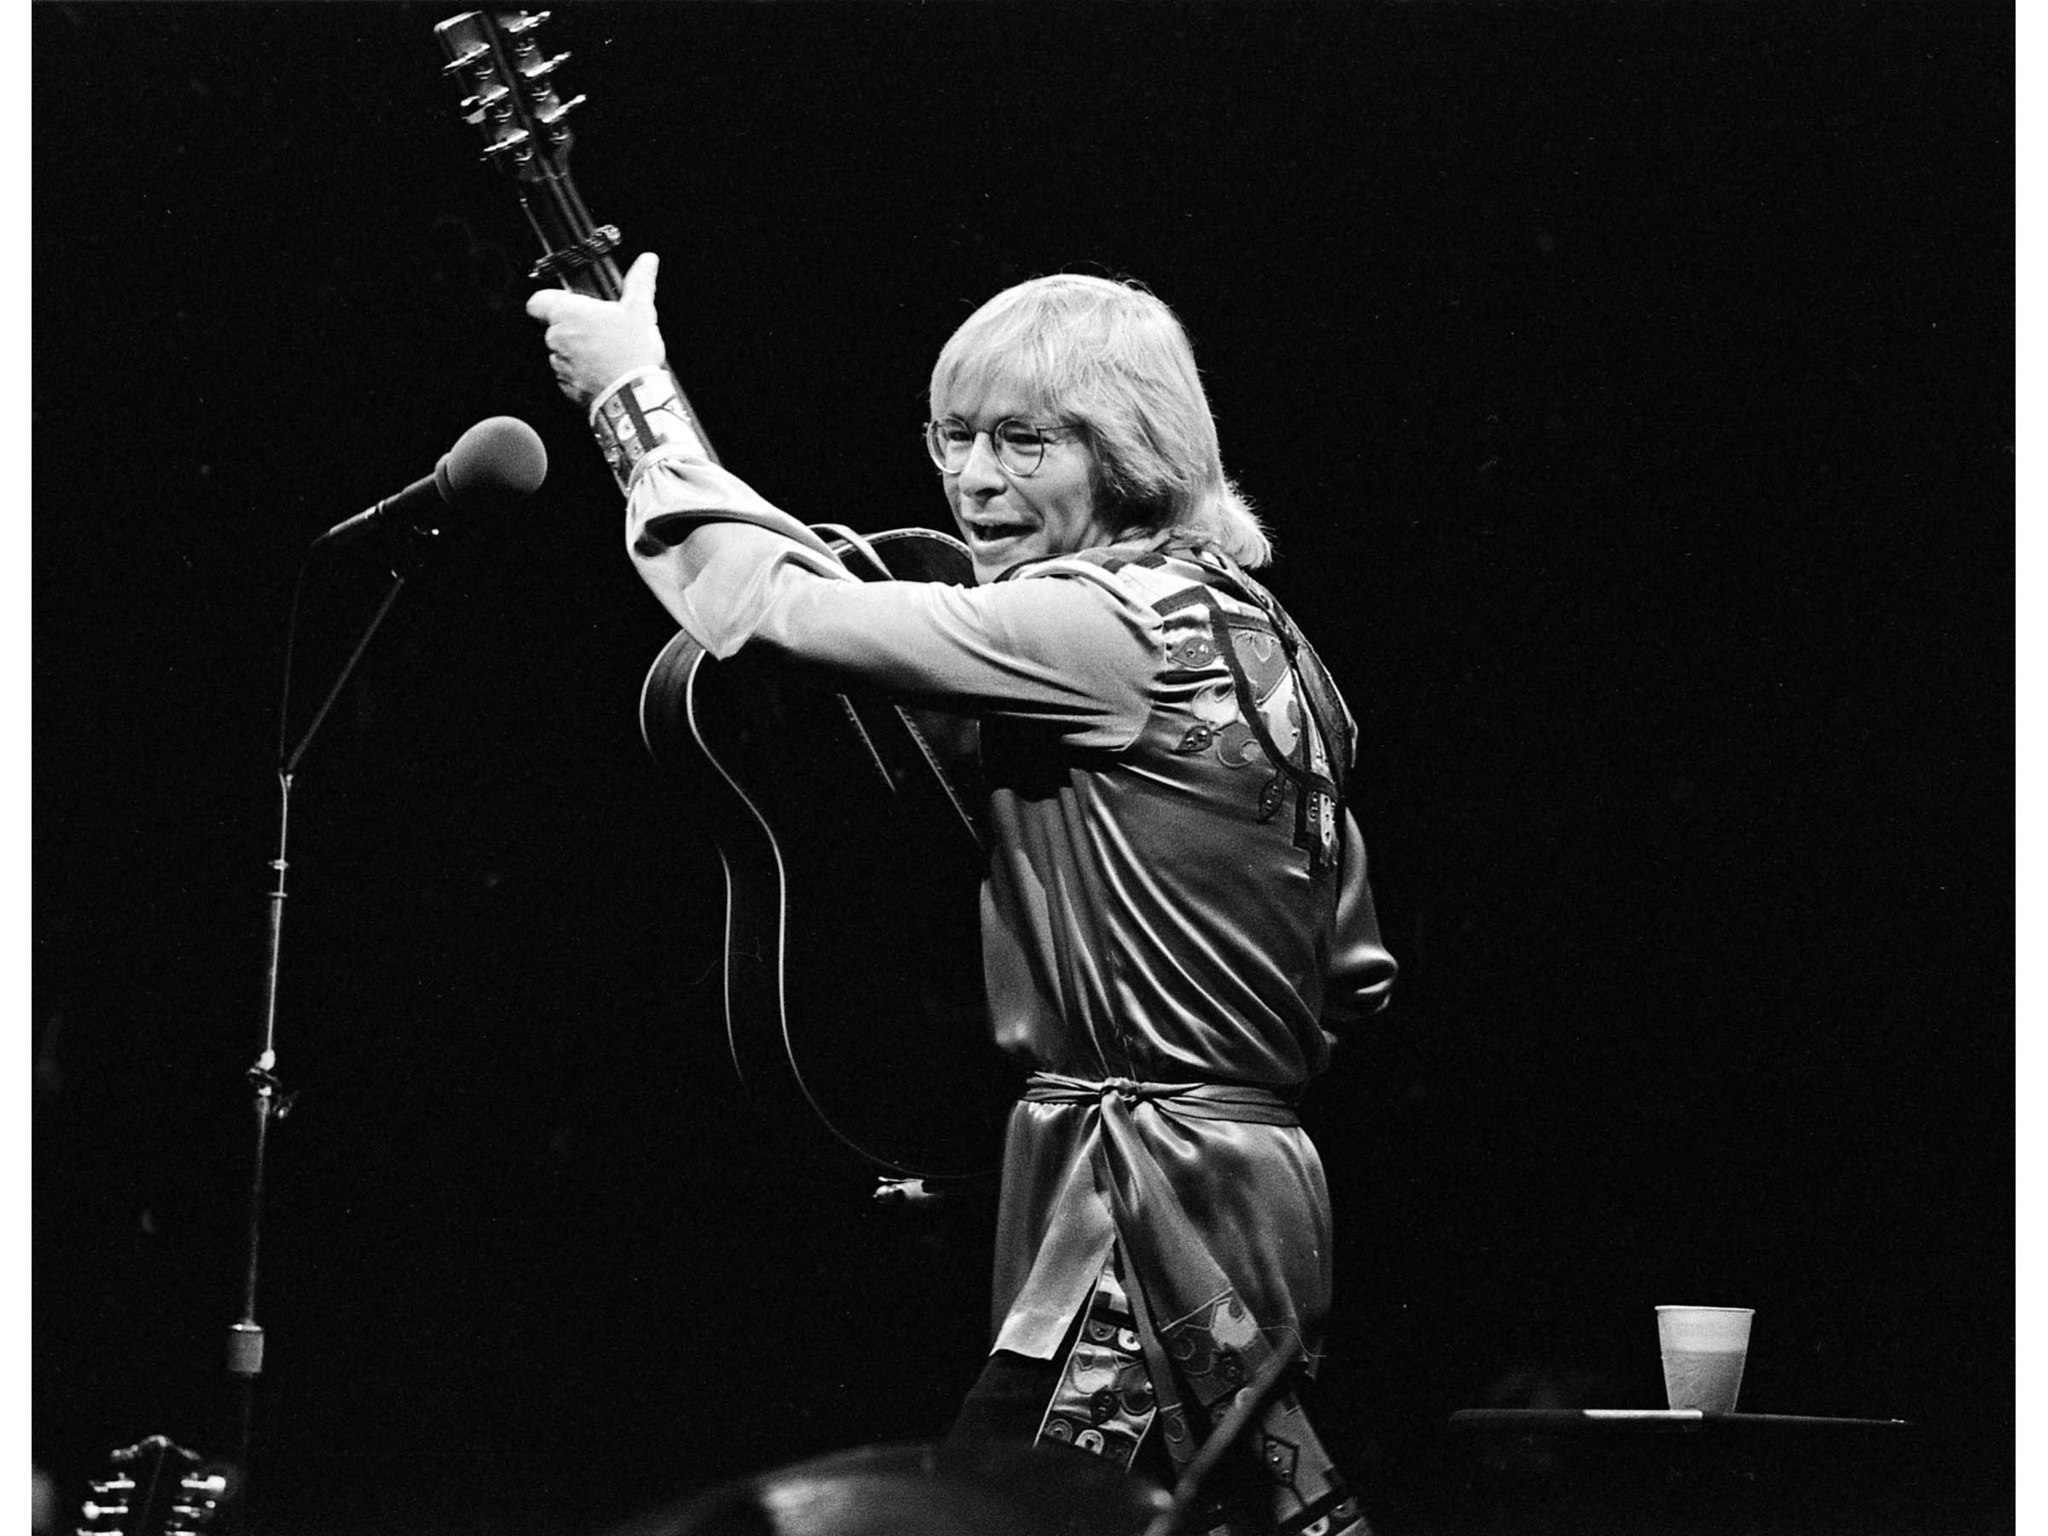 May 15, 1978: John Denver in concert at the Forum. This image is from the Los Angeles Times Archive